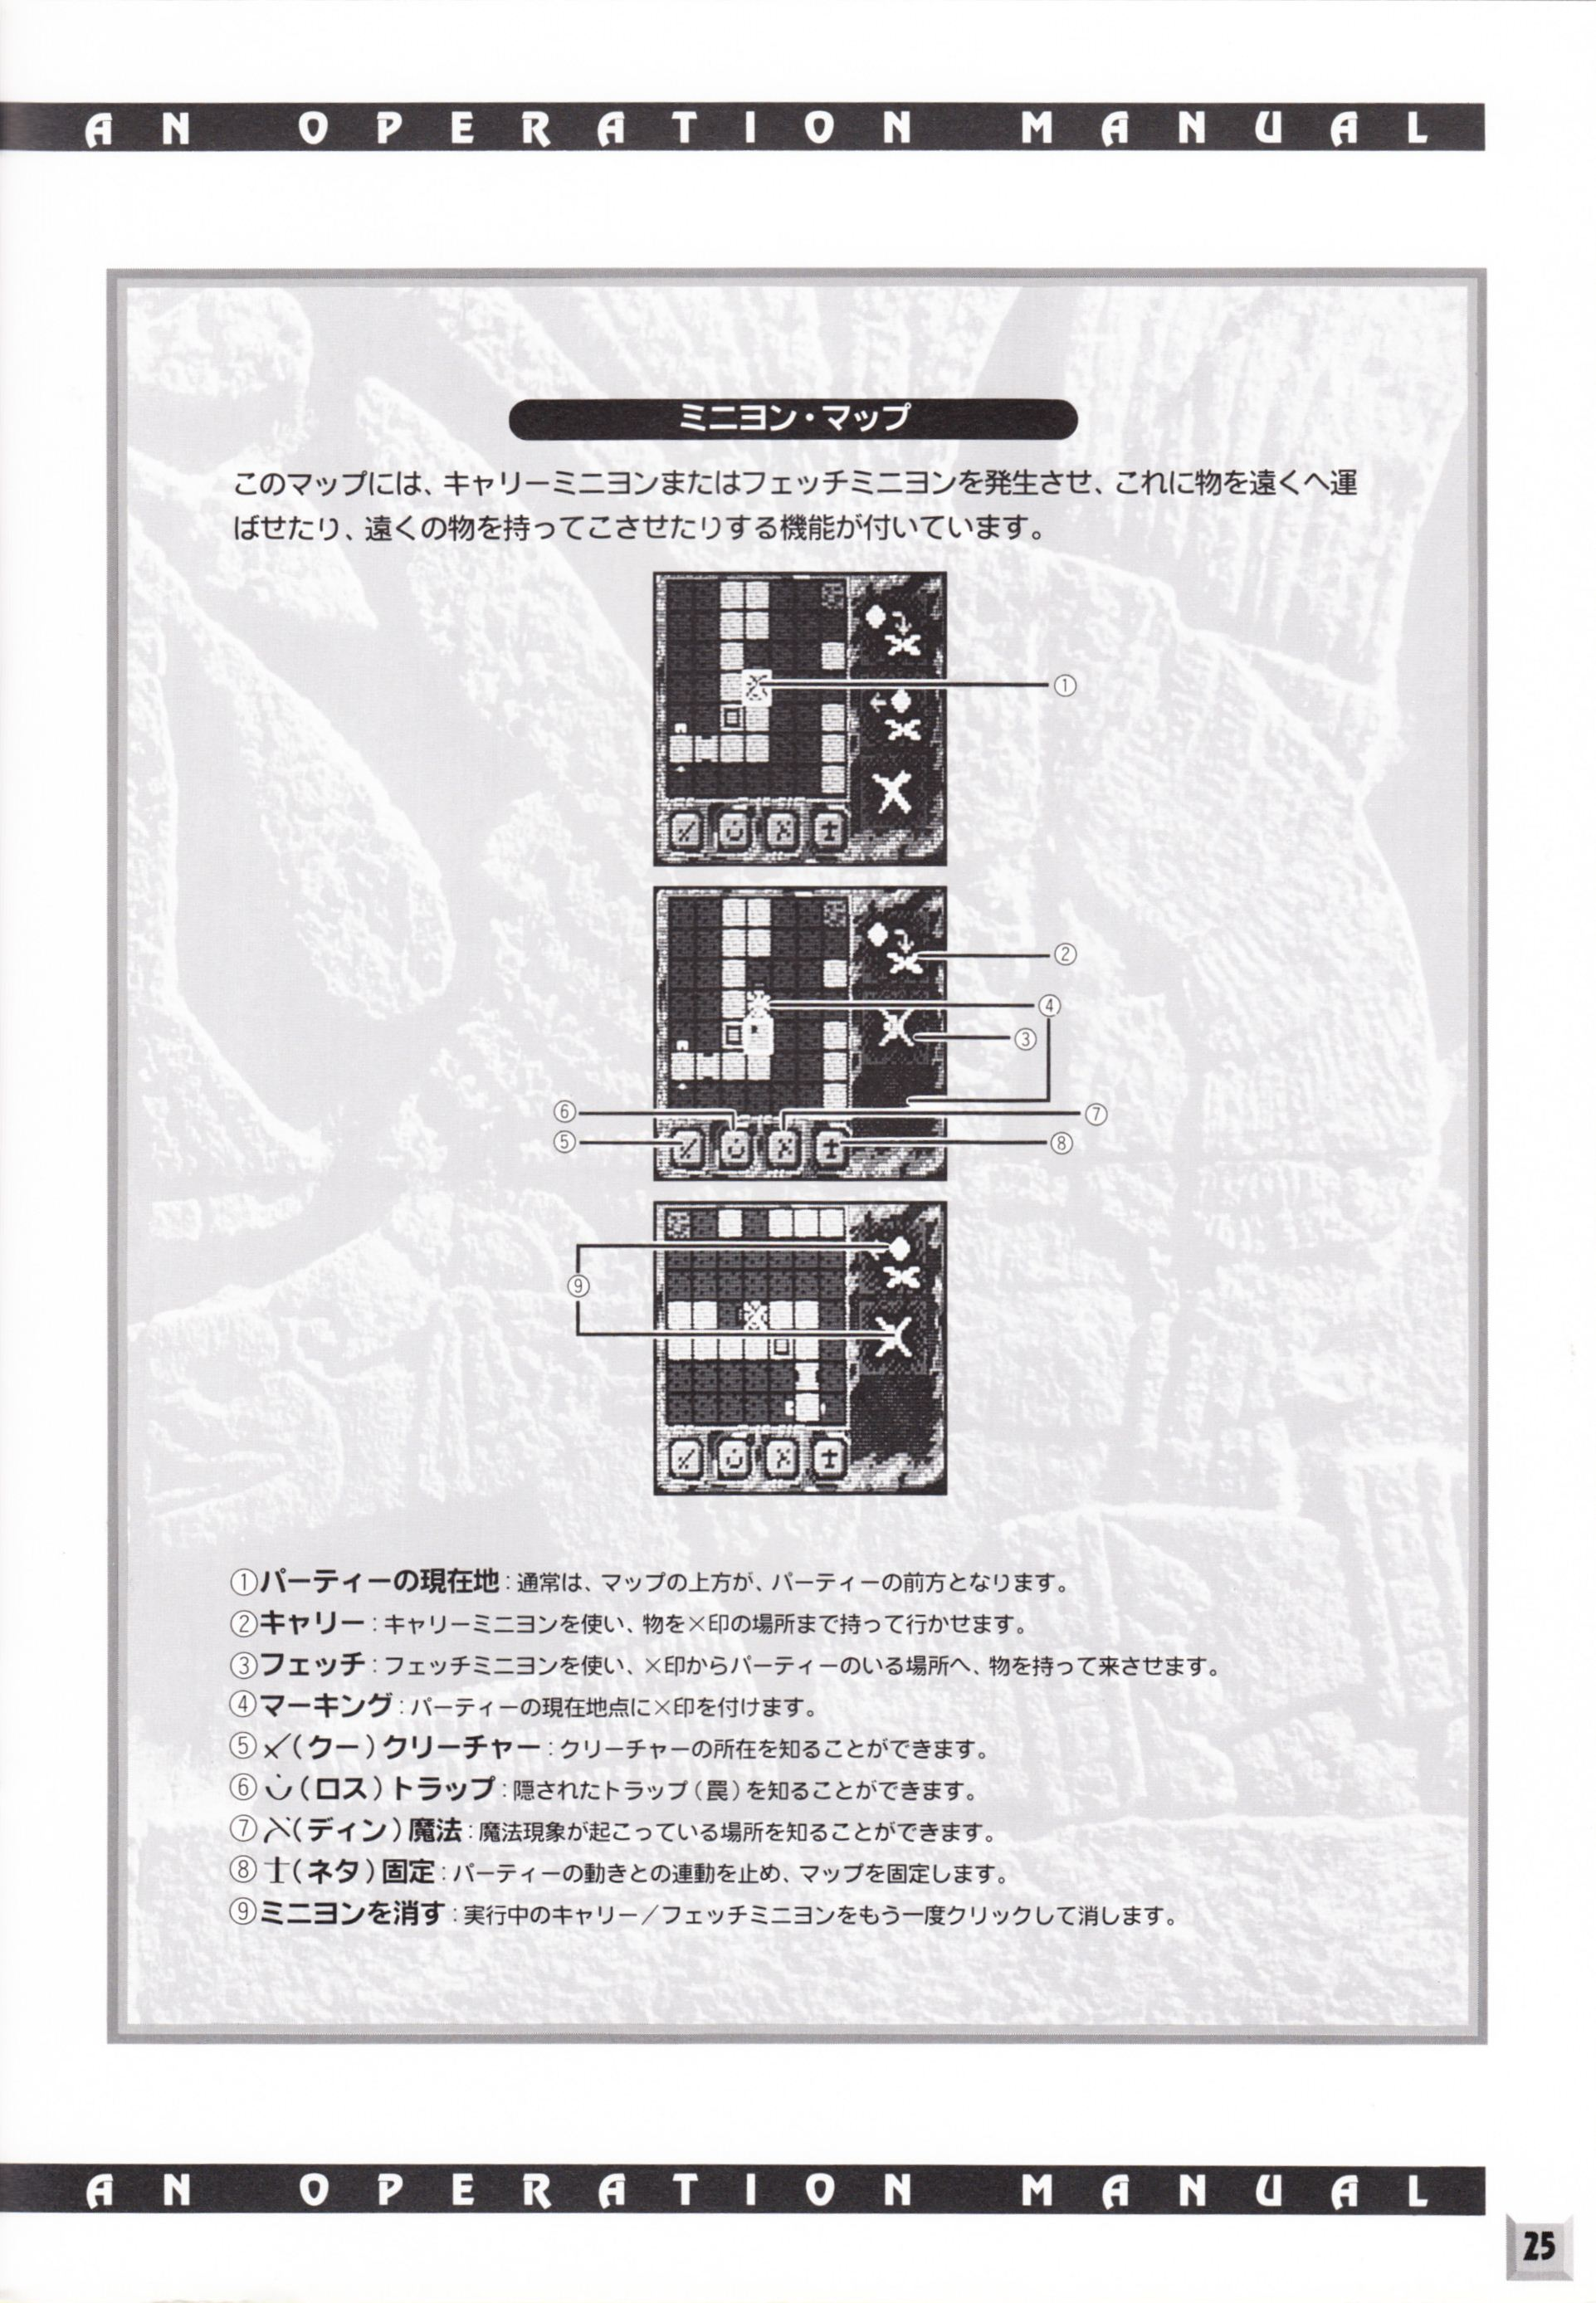 Game - Dungeon Master II - JP - PC-9801 - 3.5-inch - An Operation Manual - Page 027 - Scan